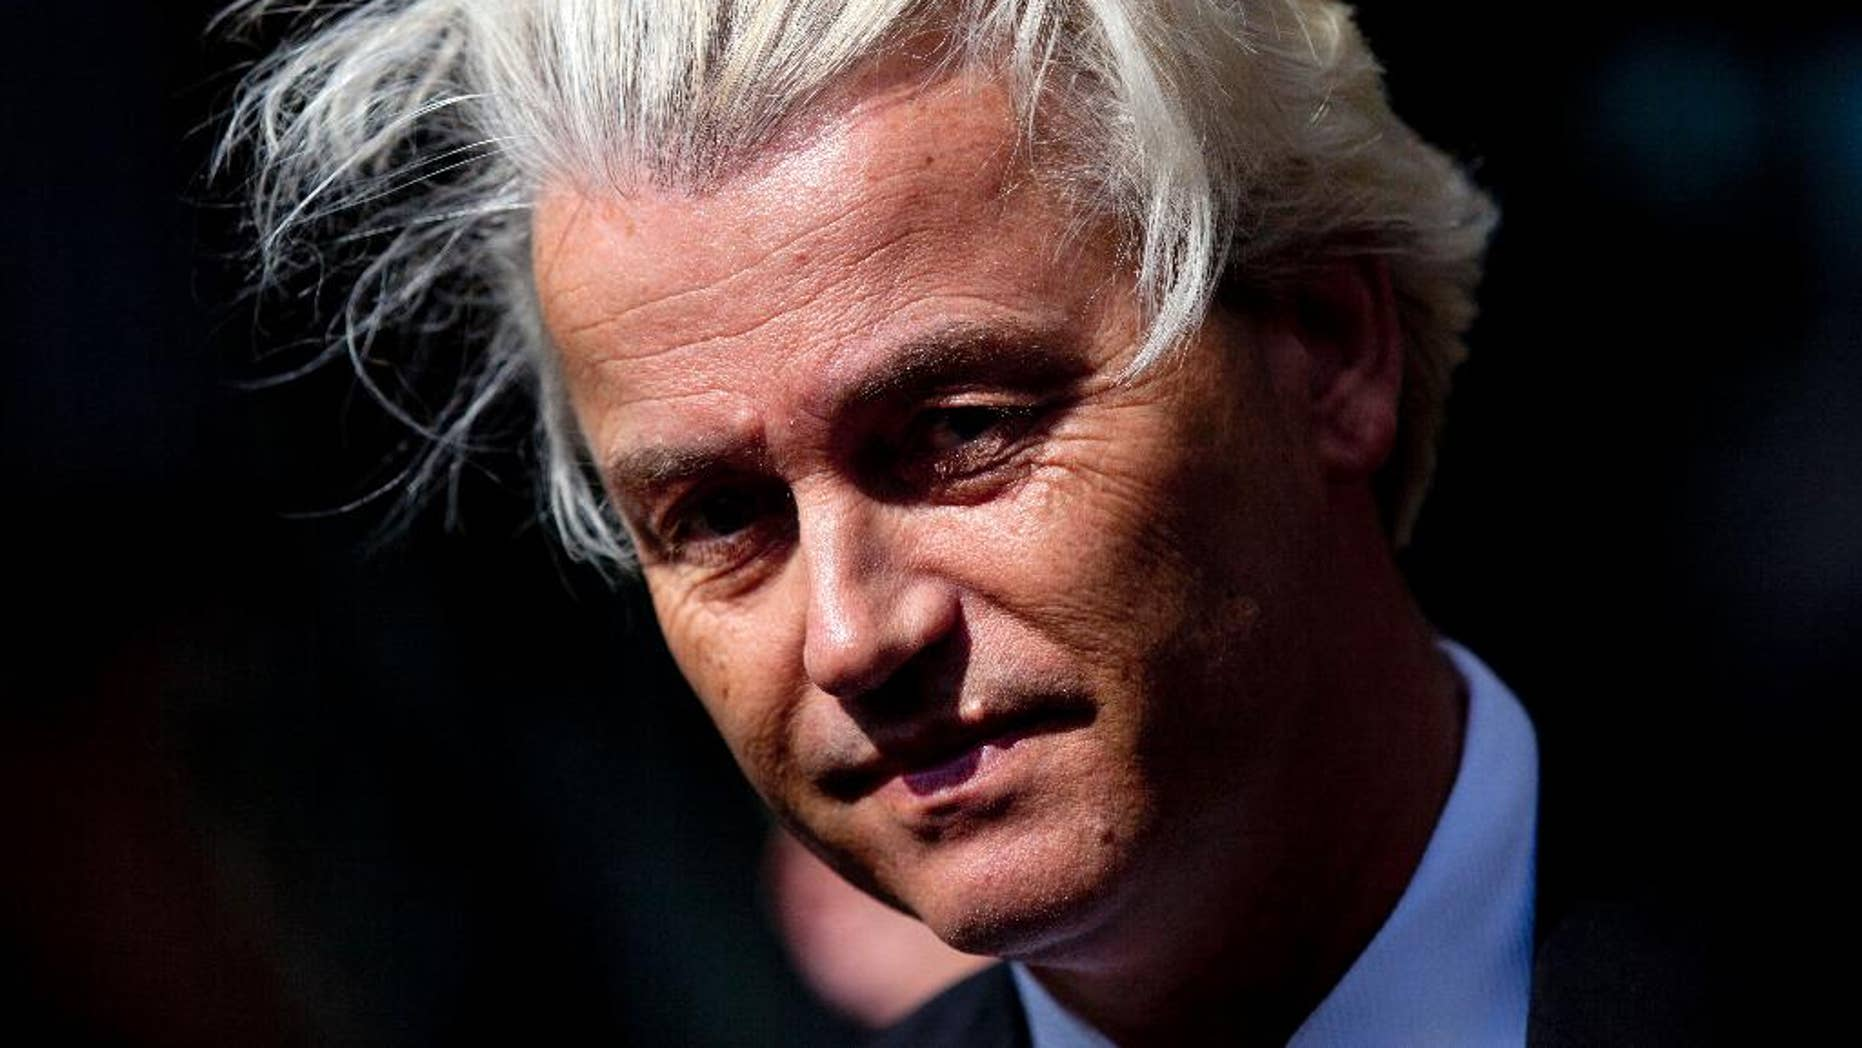 """FILE - In this May 12, 2014 file photo Dutch lawmaker Geert Wilders pauses, as he speaks to journalists outside the Dutch National Bank in Amsterdam. Dutch authorities on Thursday, Dec. 18, 2014, said they will prosecute Wilders for hate speech over a chant in which he asked his supporters whether they wanted more or fewer Moroccans in the Netherlands and they shouted back """"Fewer! Fewer! Fewer!"""" The announcement marks the second time Wilders has faced charges linked to his anti-immigrant and anti-Islam rhetoric. He was acquitted of similar charges in 2011 for comparing Islam with Naziism and calling for a ban on the Quran. (AP Photo/Peter Dejong, File)"""